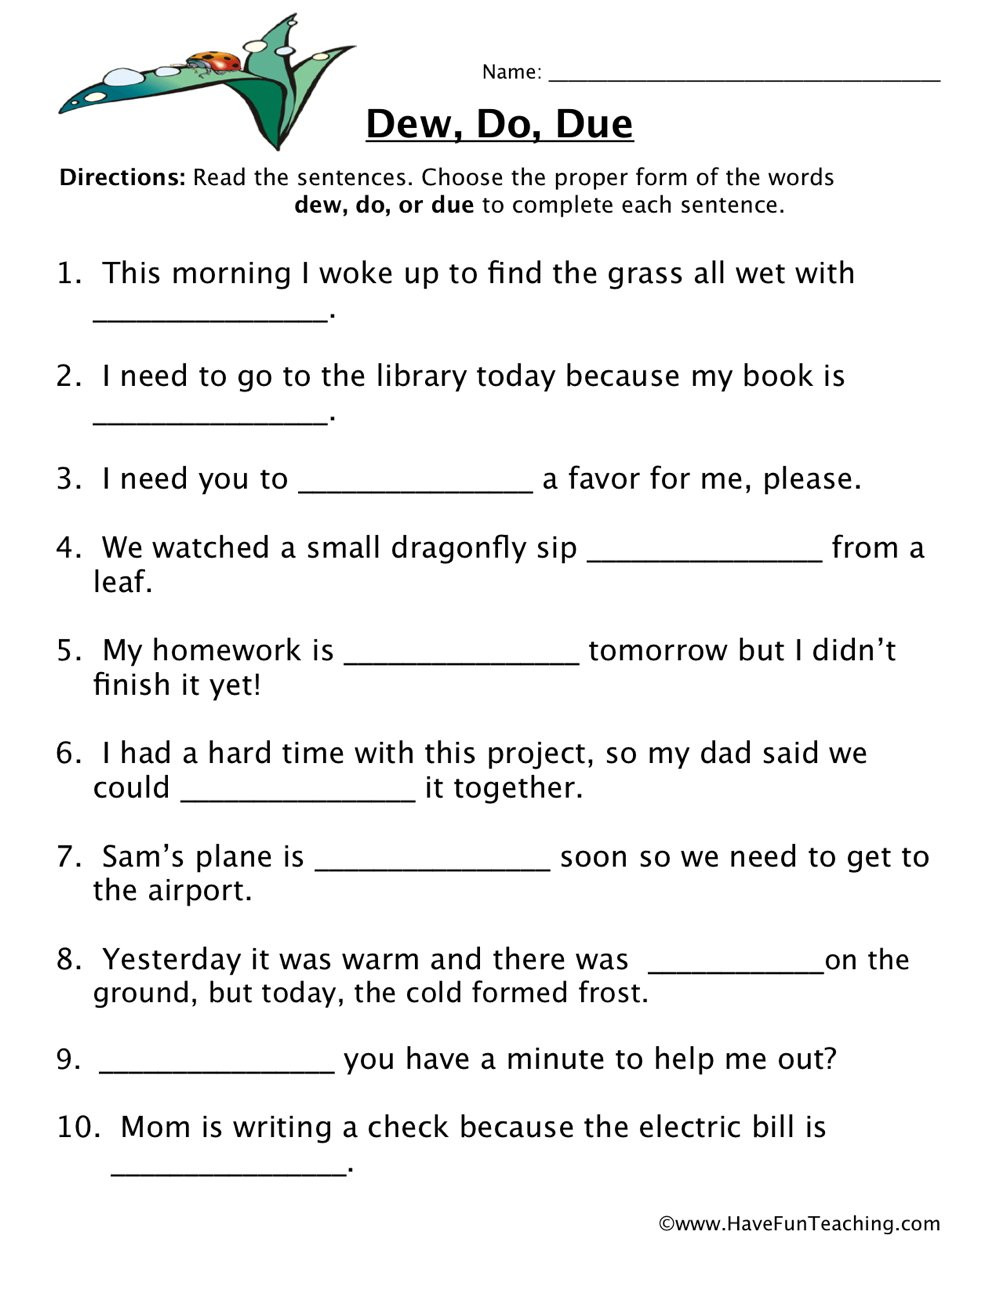 Homophones Worksheet 6th Grade Dew Do Due Homophones Worksheet